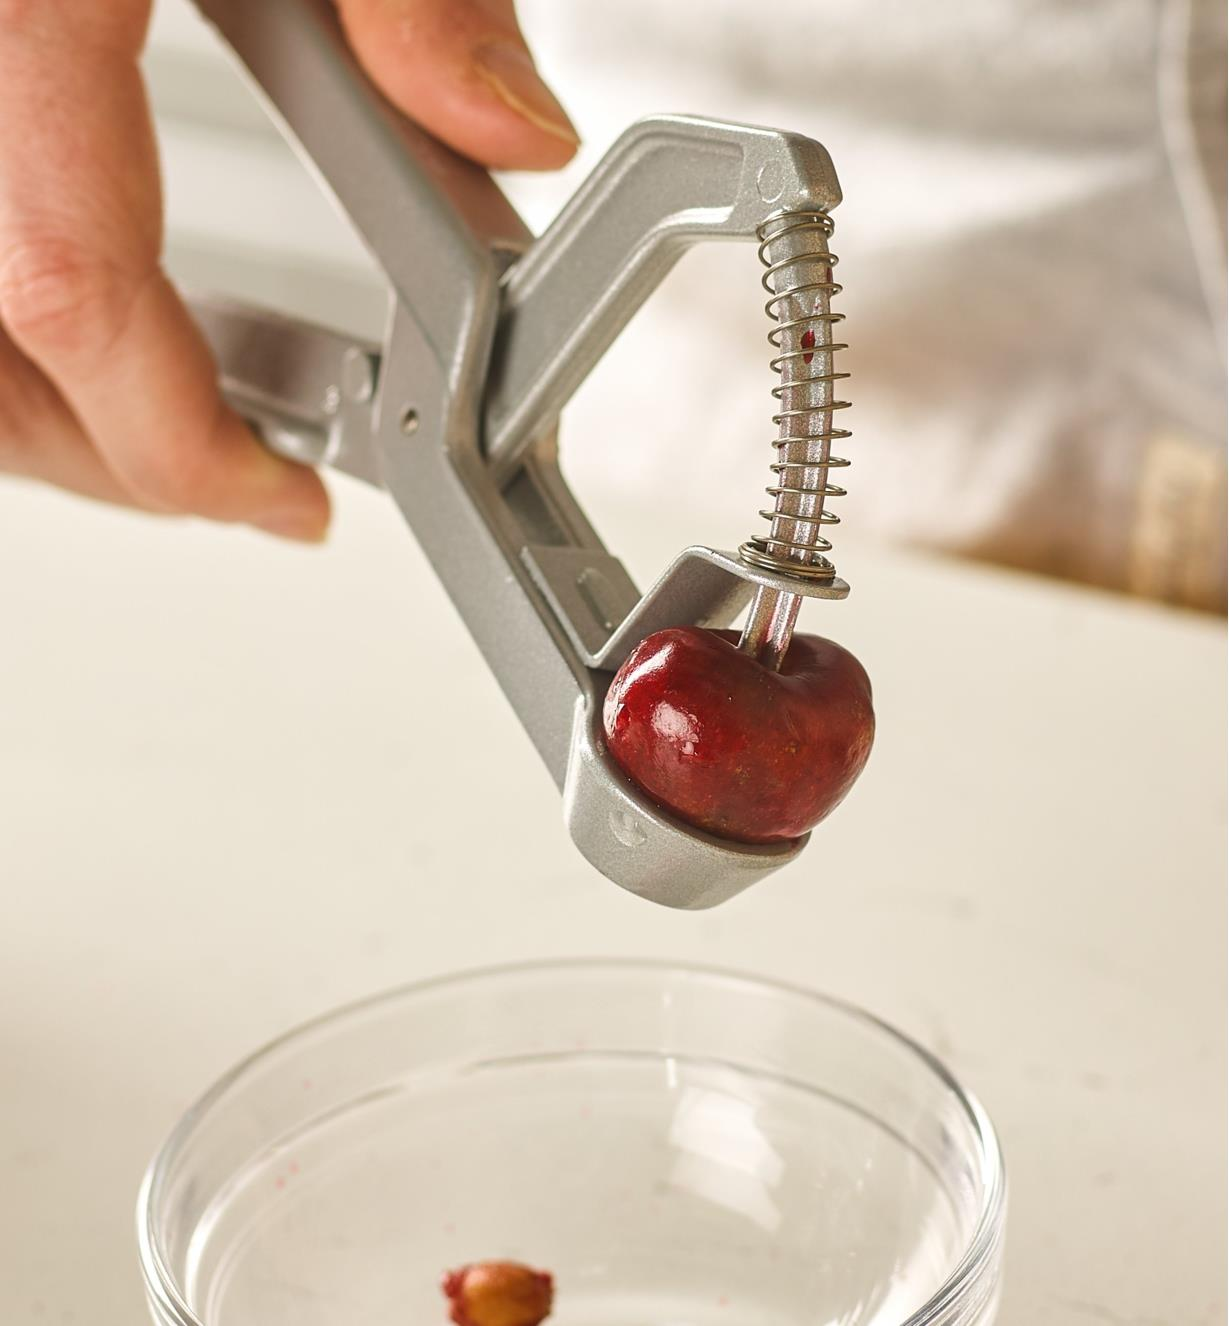 Spring-loaded plunger of the olive and cherry pitter pushes the pit through the fruit